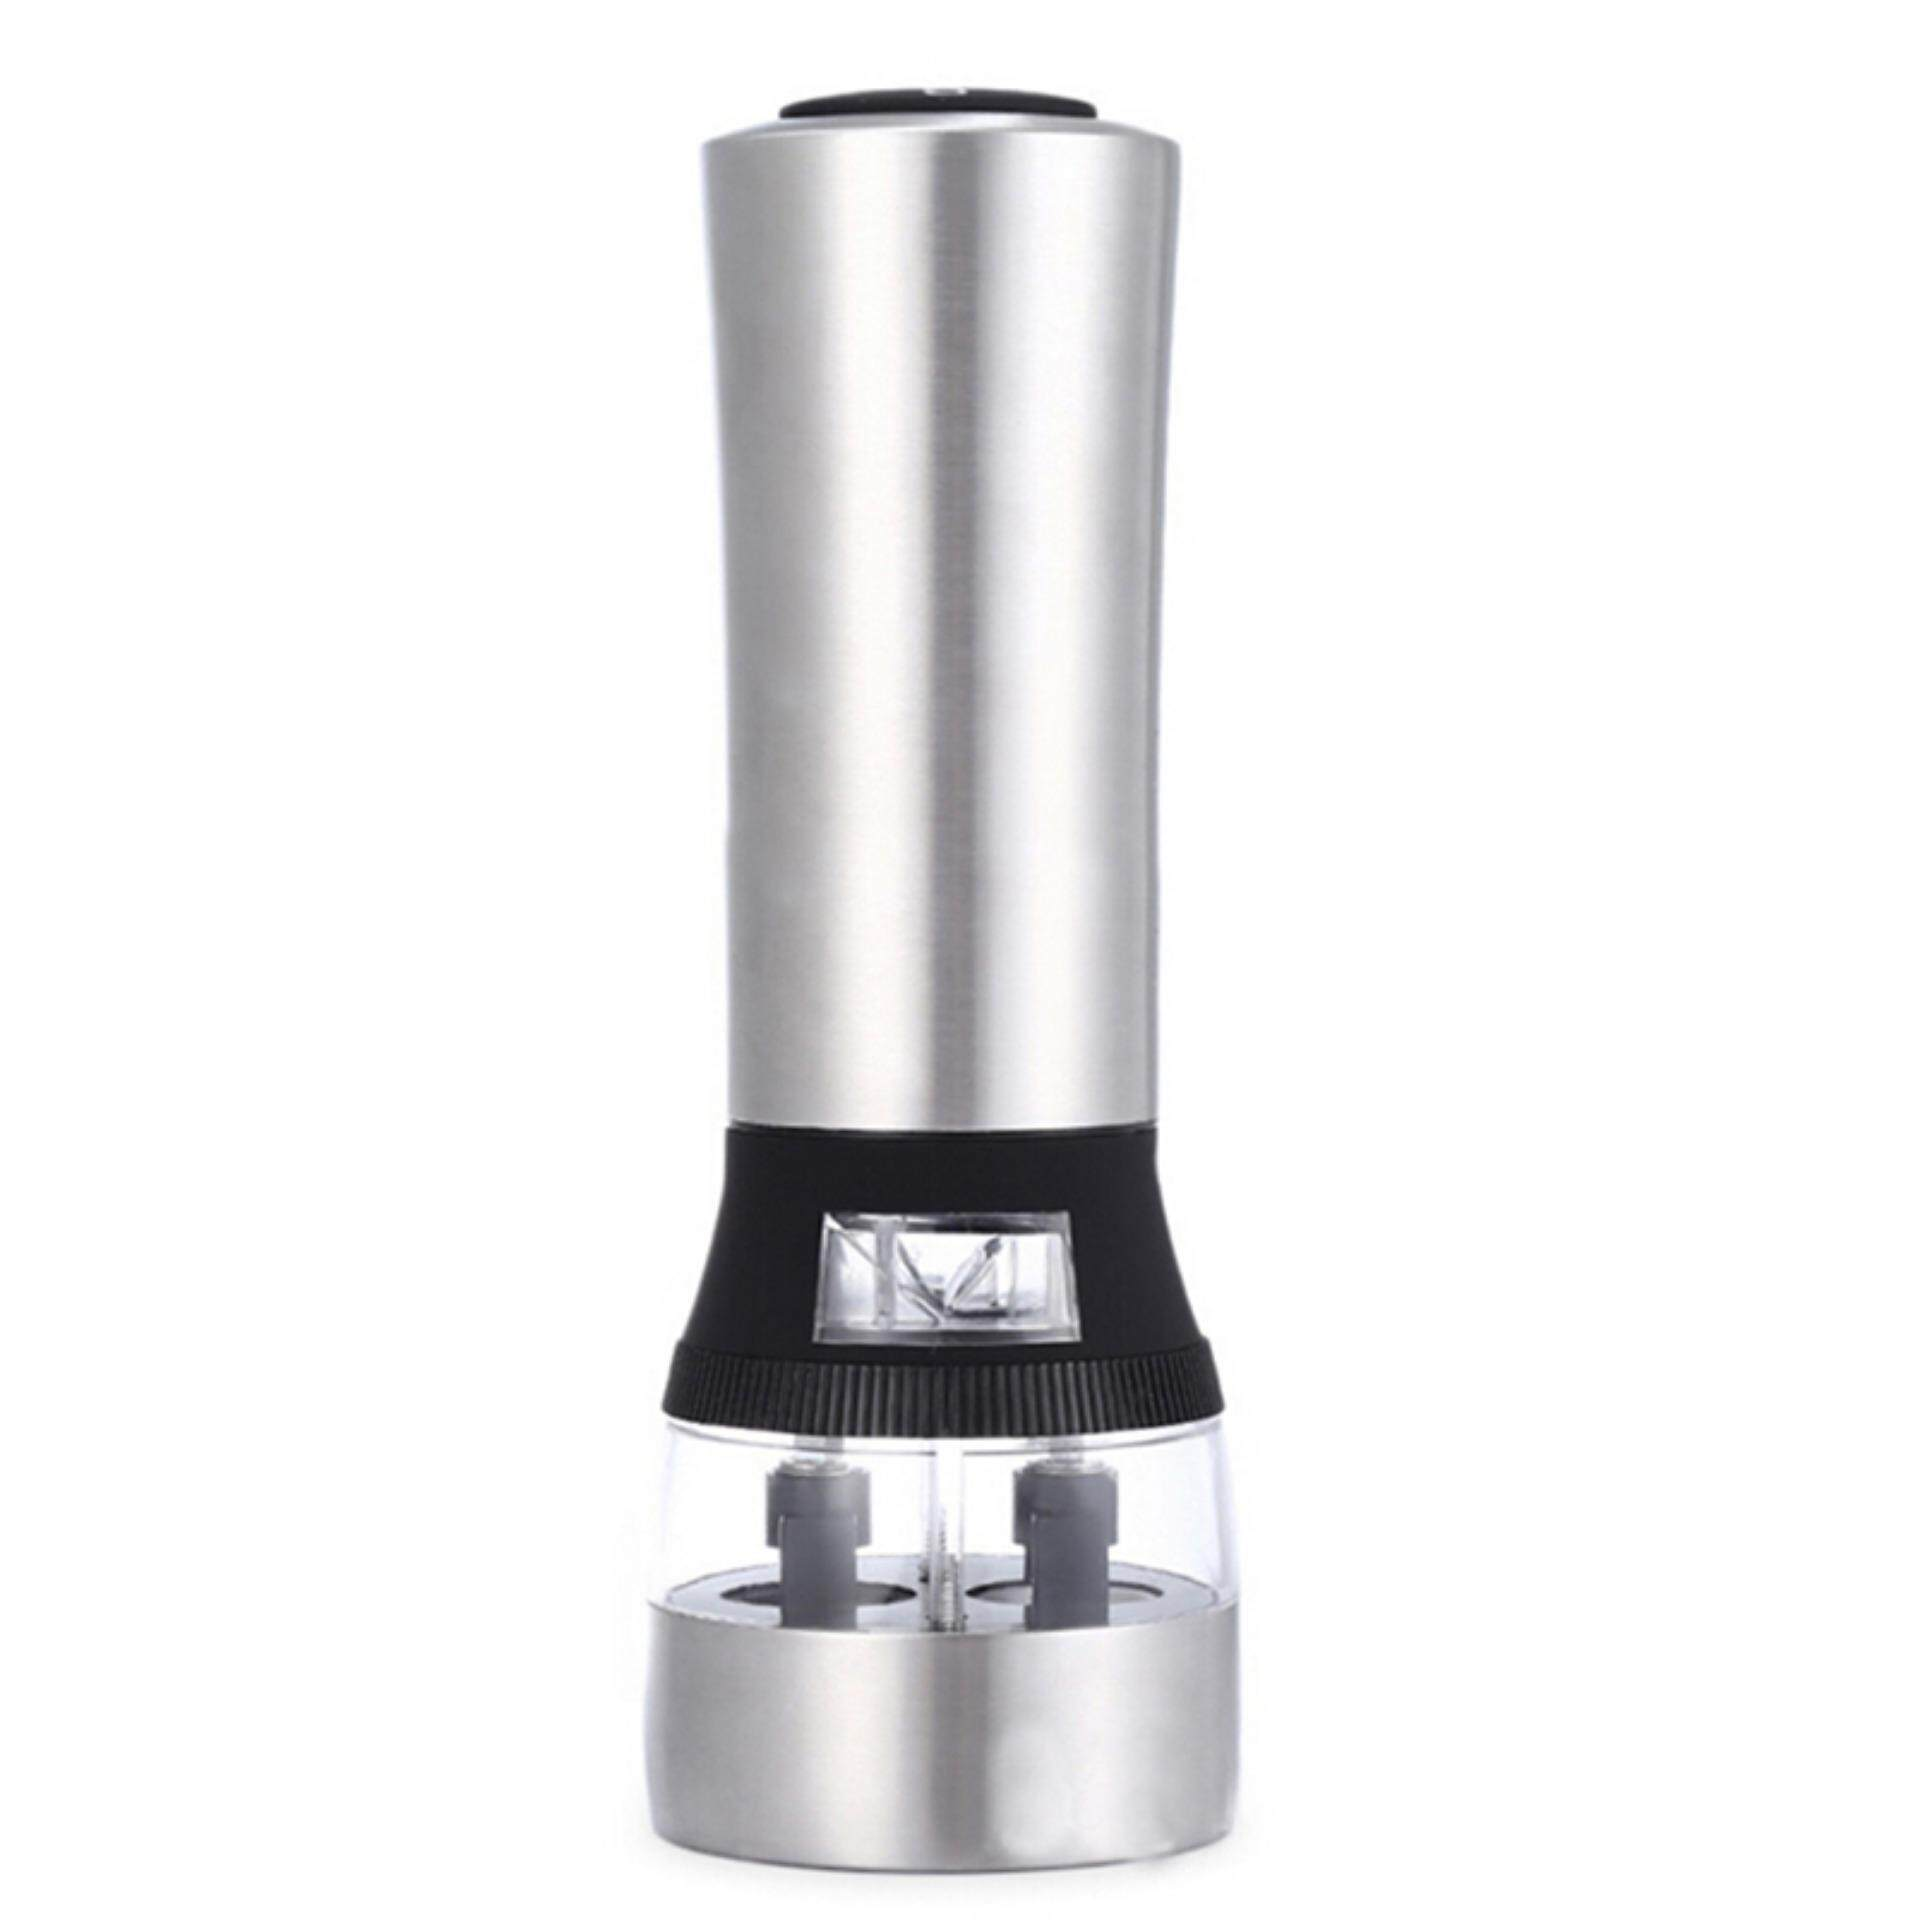 Electric Pepper Mill Salt And Pepper The Grinder Kitchen Tools